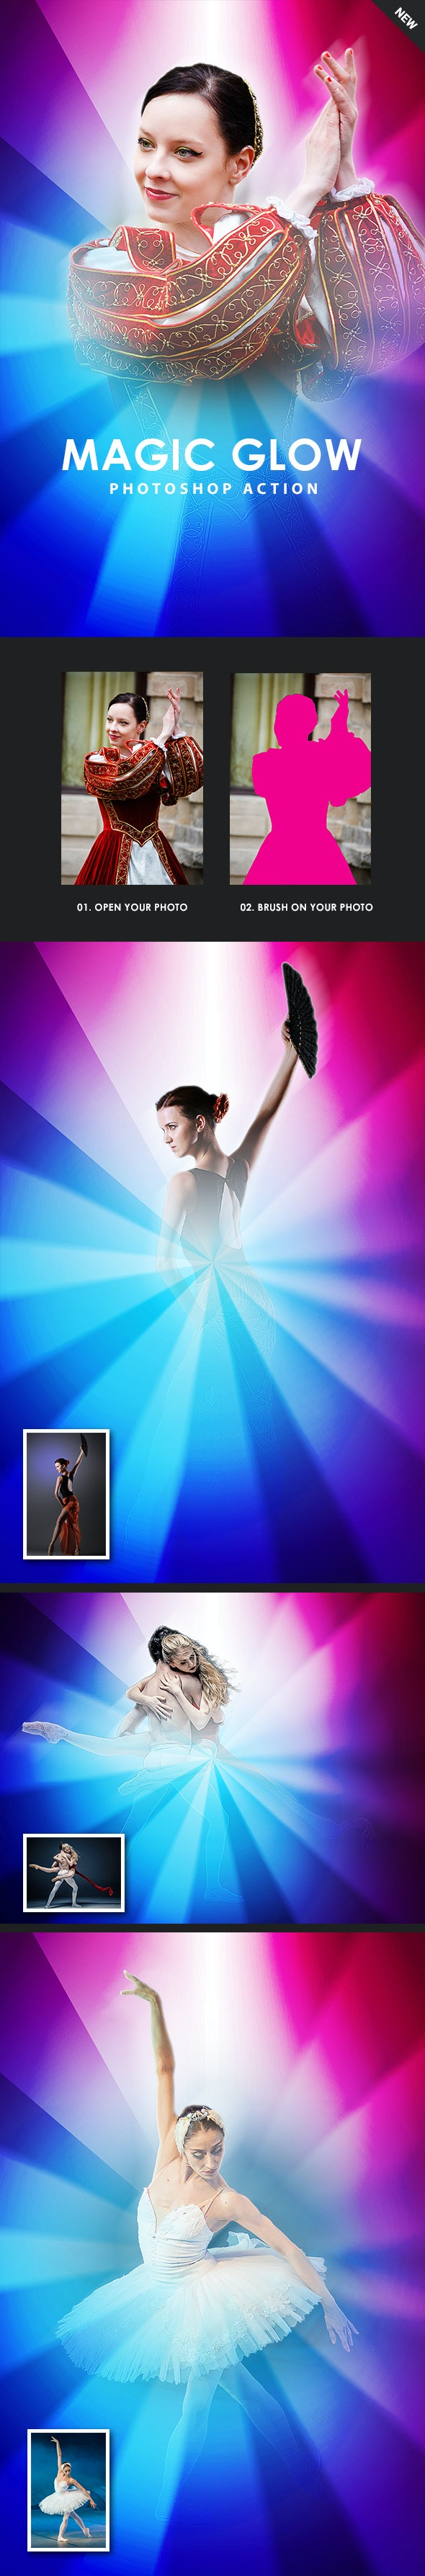 Magic Glow Photoshop Action - Photo Effects Actions